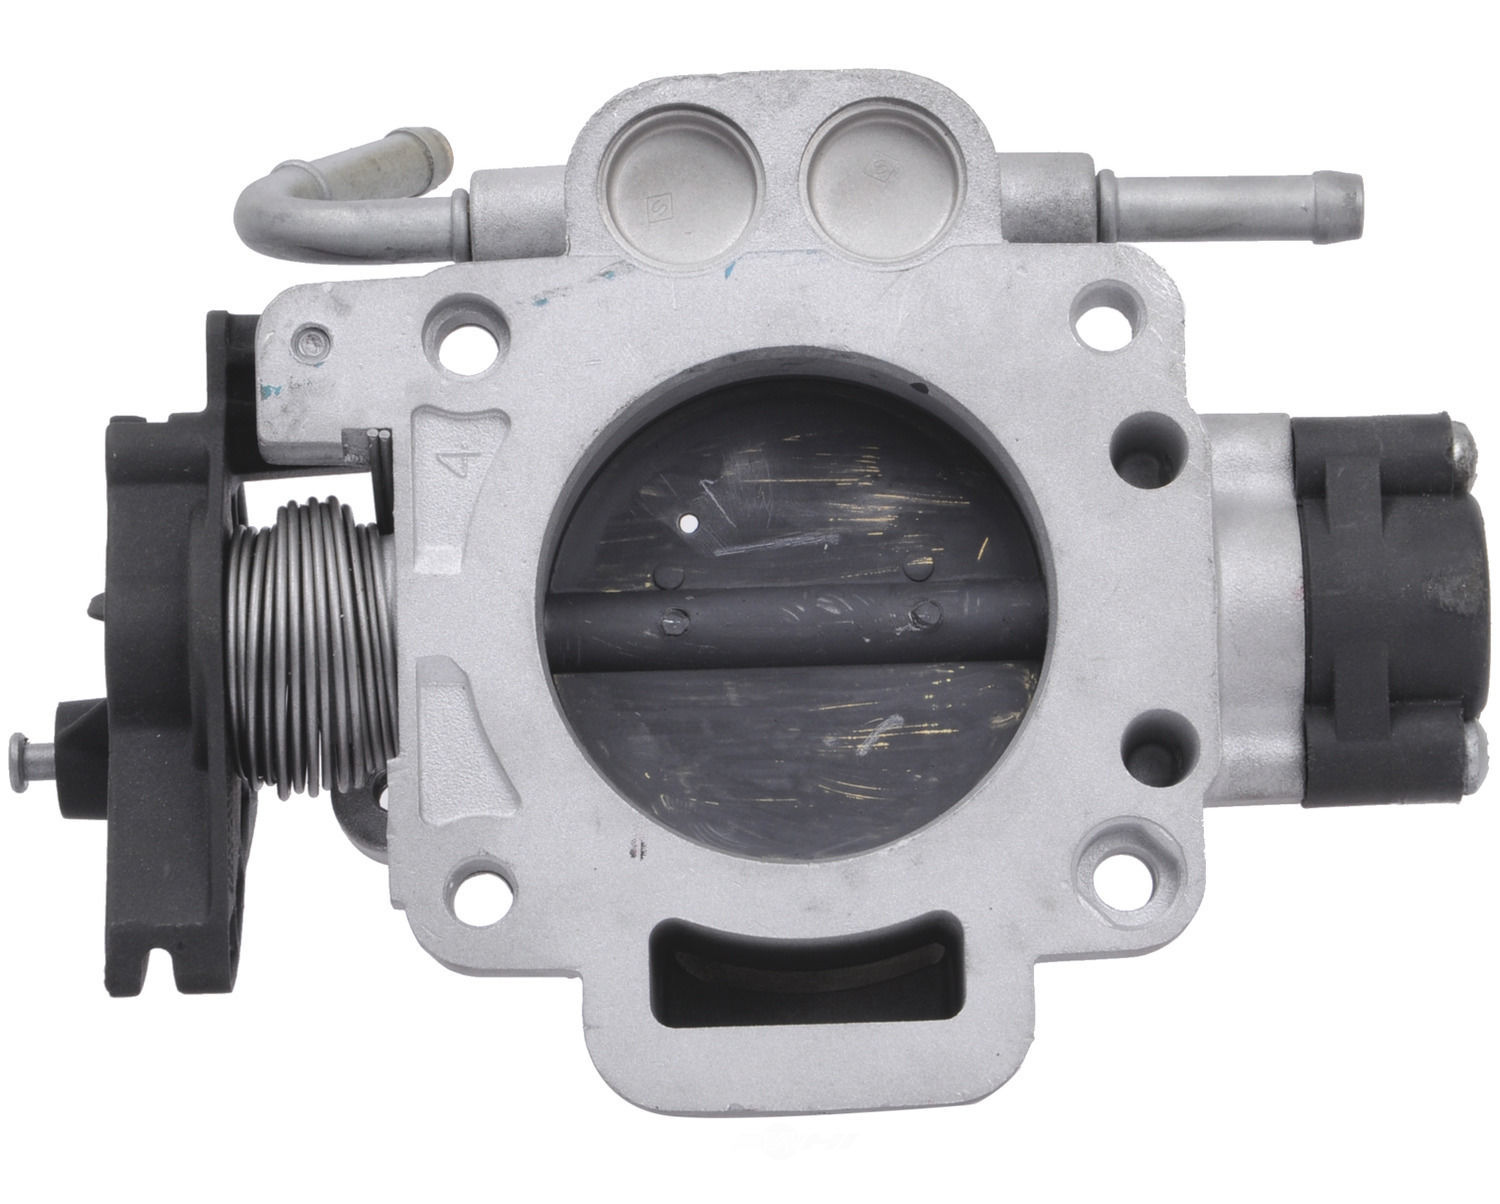 CARDONE/A-1 CARDONE - Throttle Body - A1C 67-1018